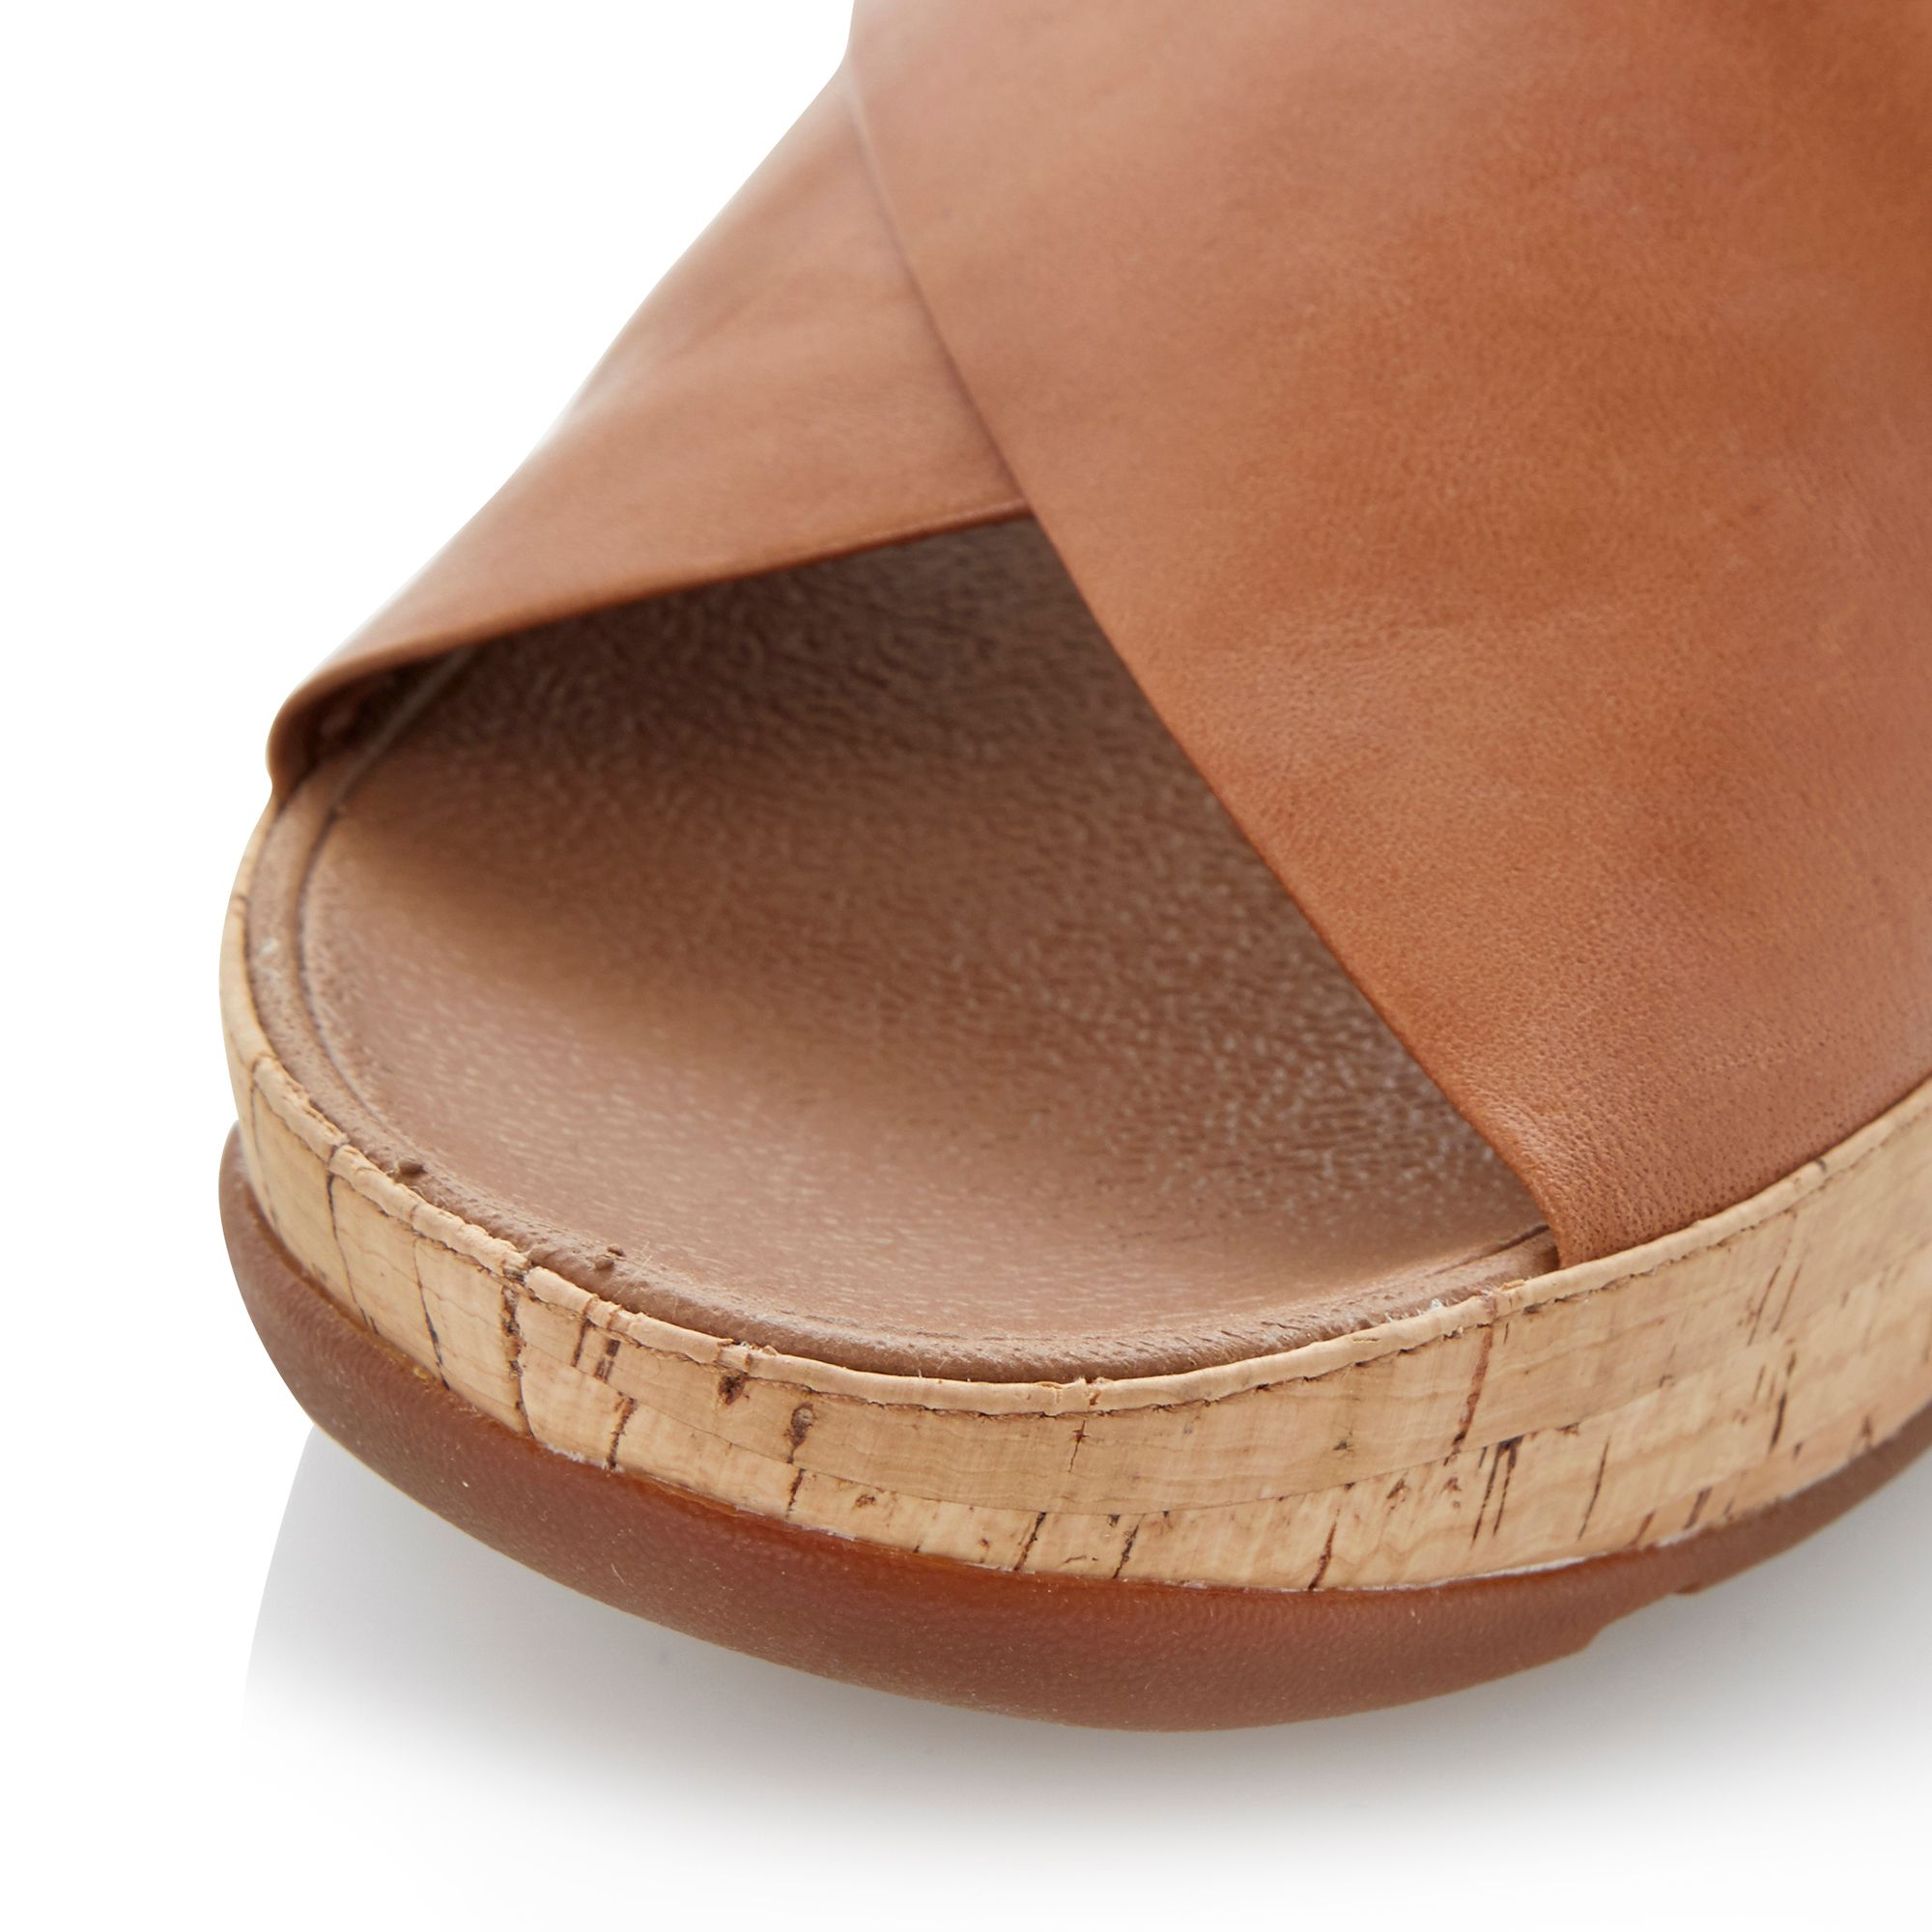 Fitflop Kys Leather Round Toe Crossover Wedge Sandals In